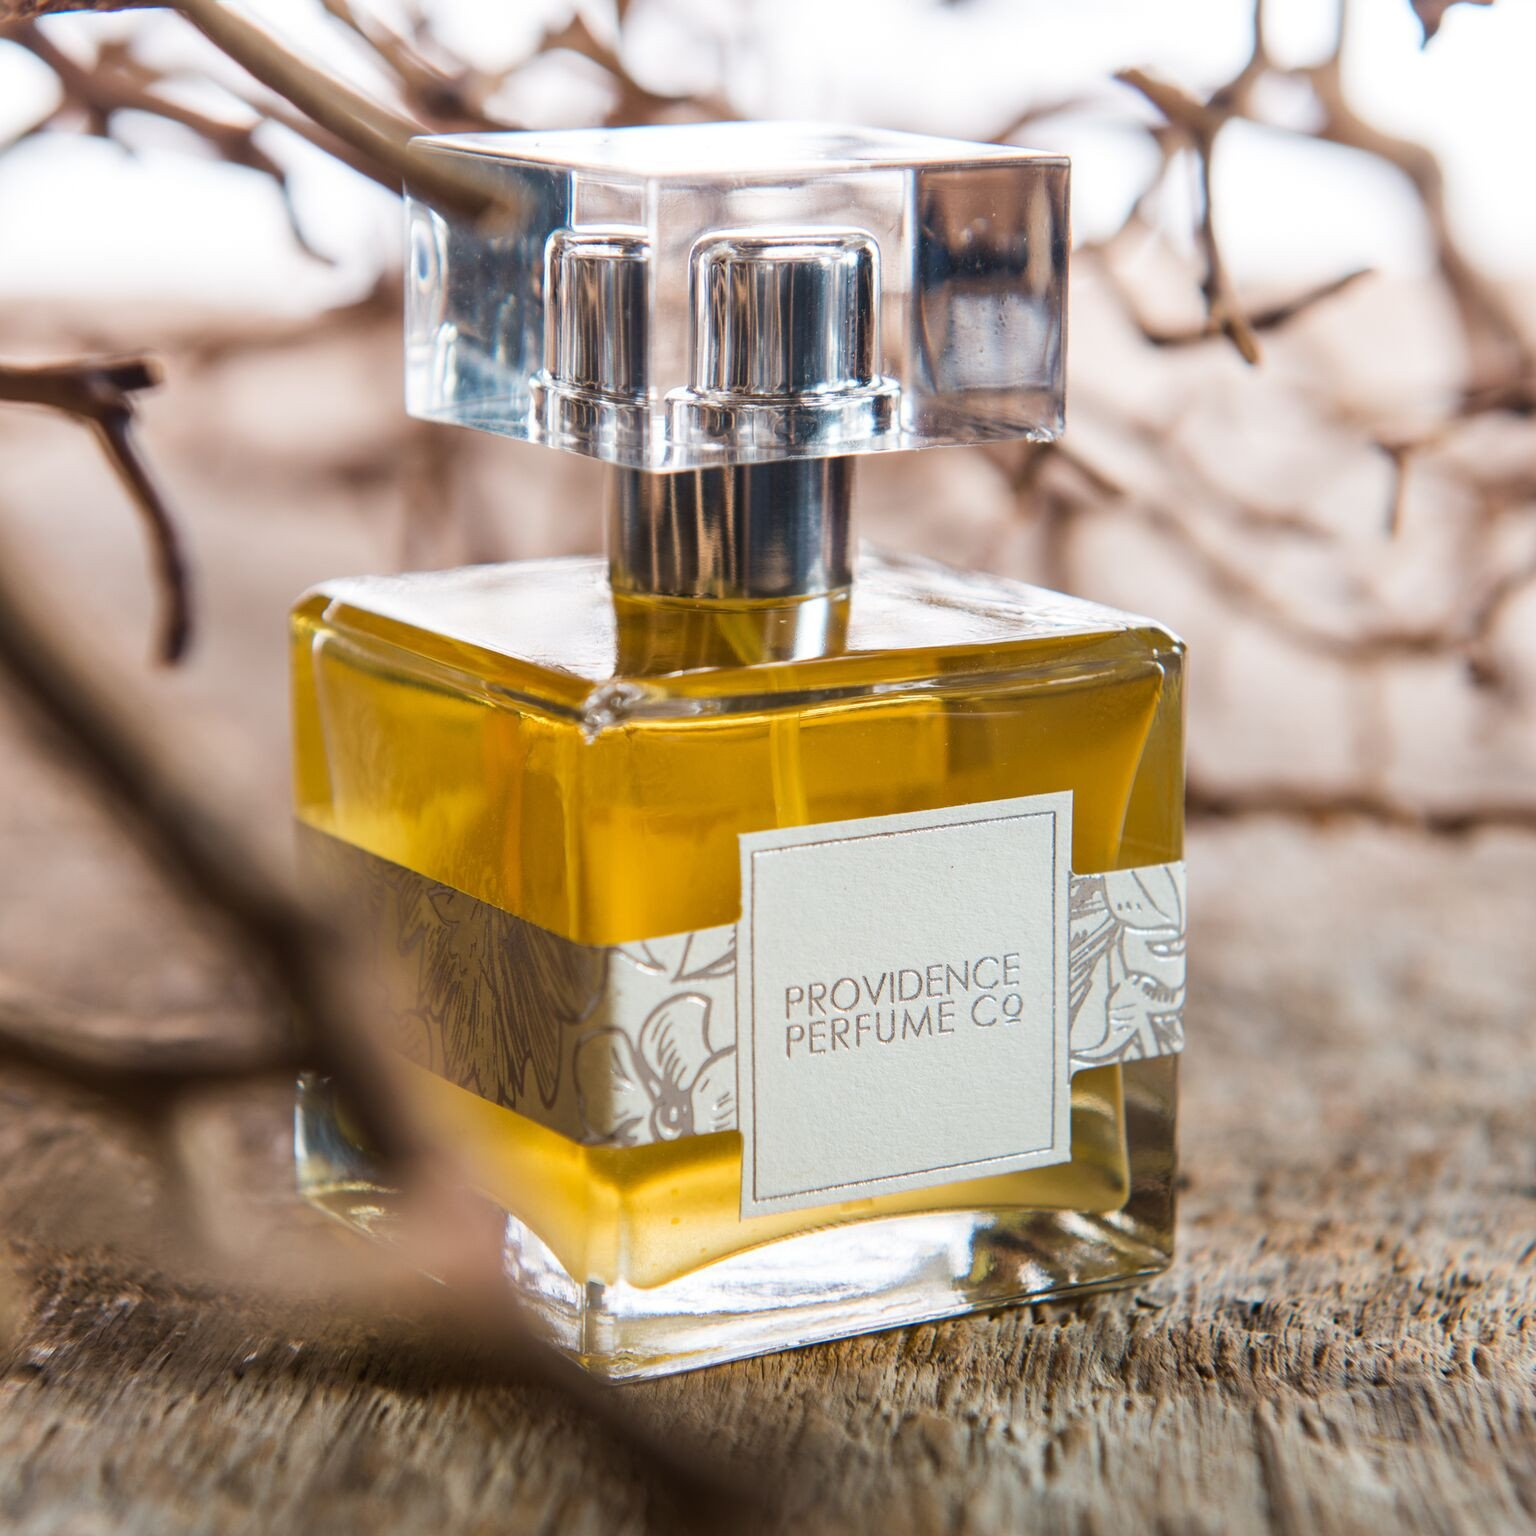 Natural organic perfumes, perfume classes, perfumery materials – Providence  Perfume Co.